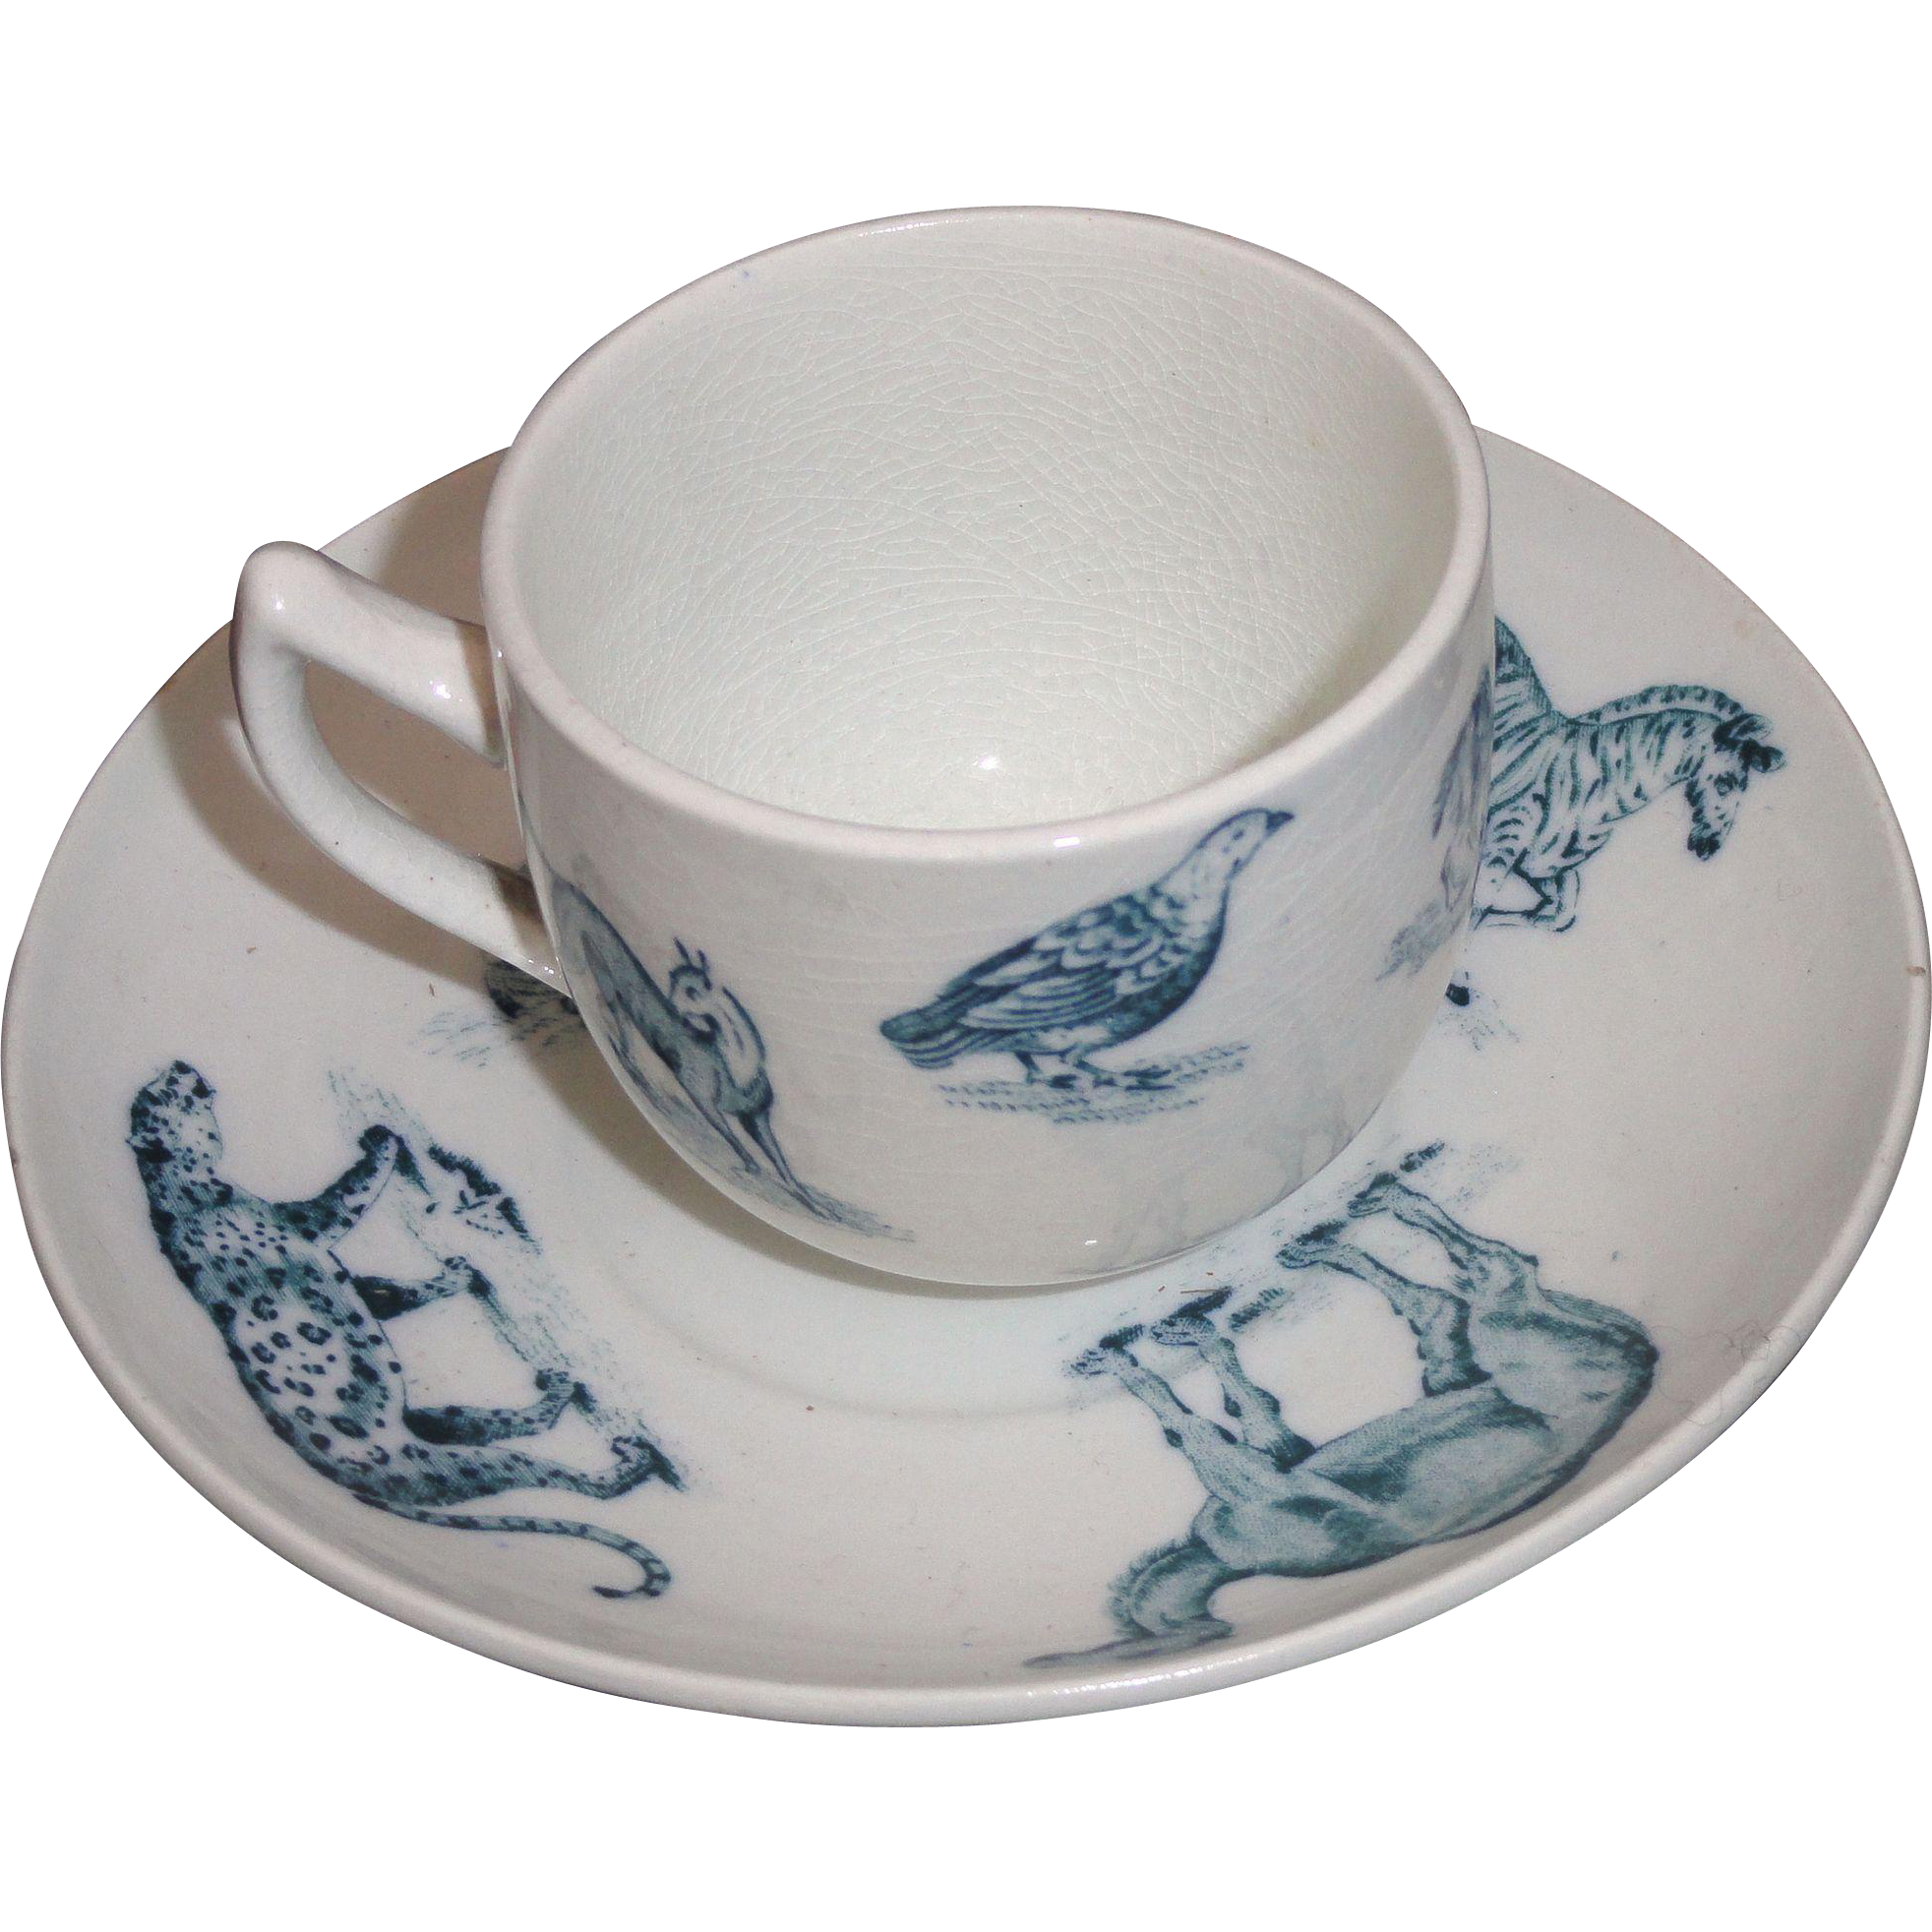 Early Copeland Child Animal Toy Cup & Saucer Zebra Leopard Camel Critters 1905